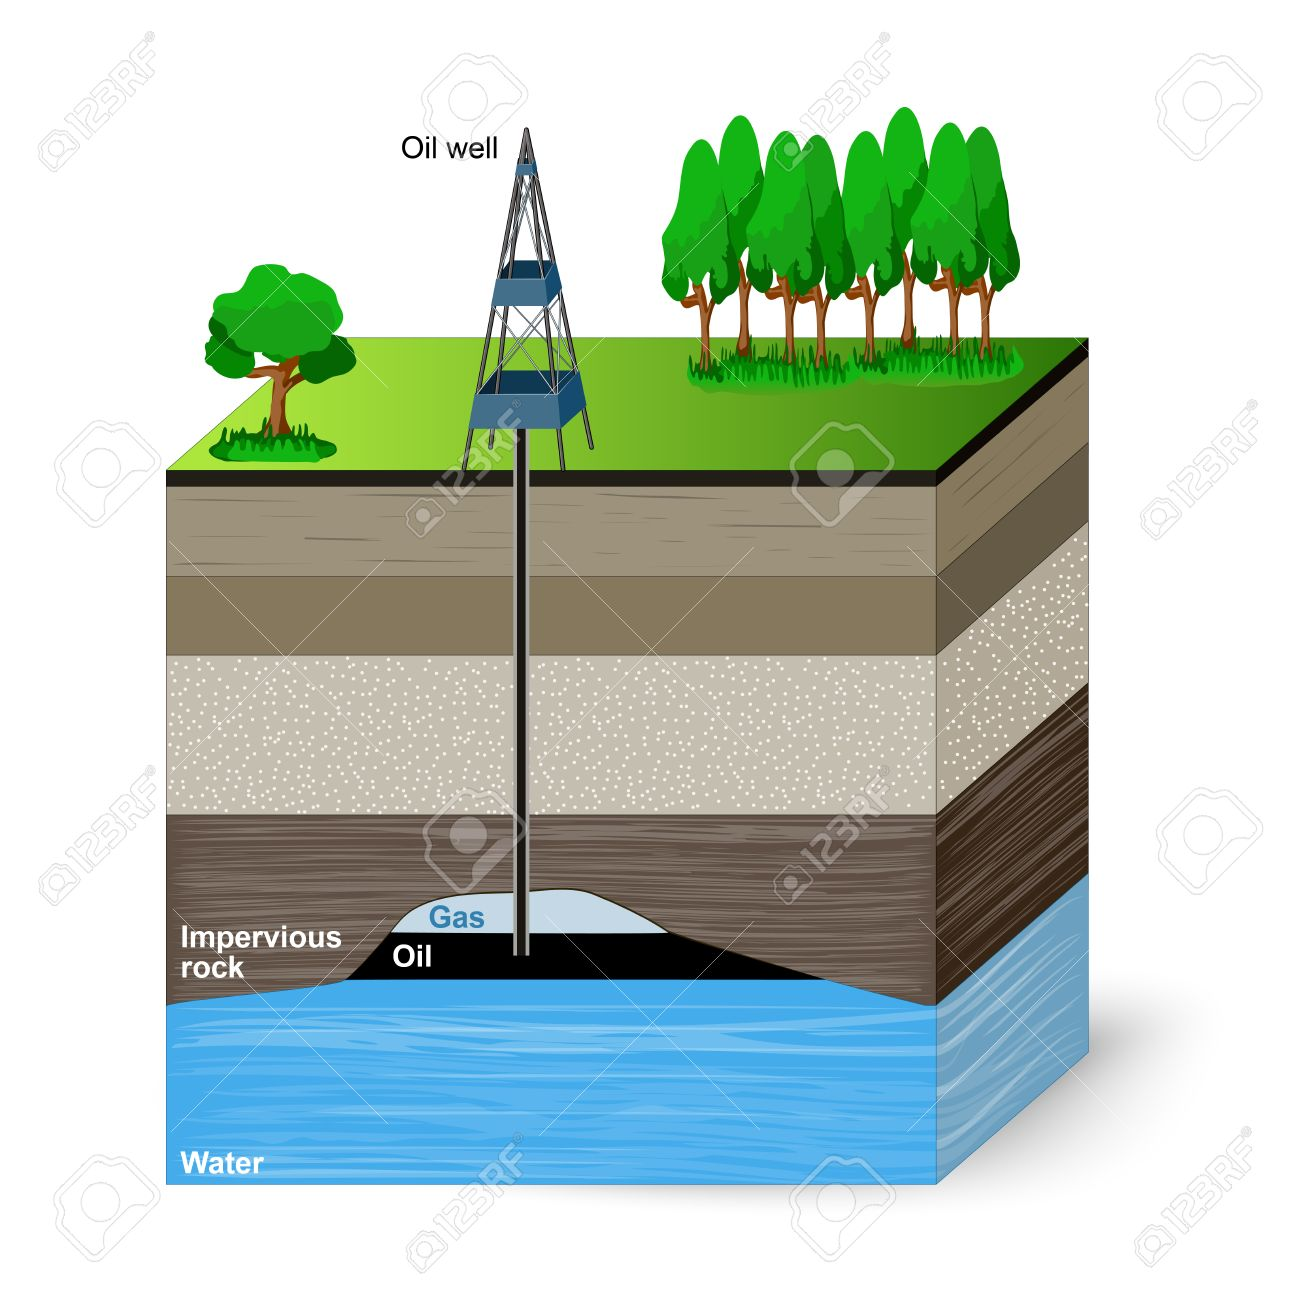 Oil Drilling Diagram Earth Just Another Wiring Blog Well Of An Drill Extraction Conventional Layers Royalty Free Rh 123rf Com Drilled